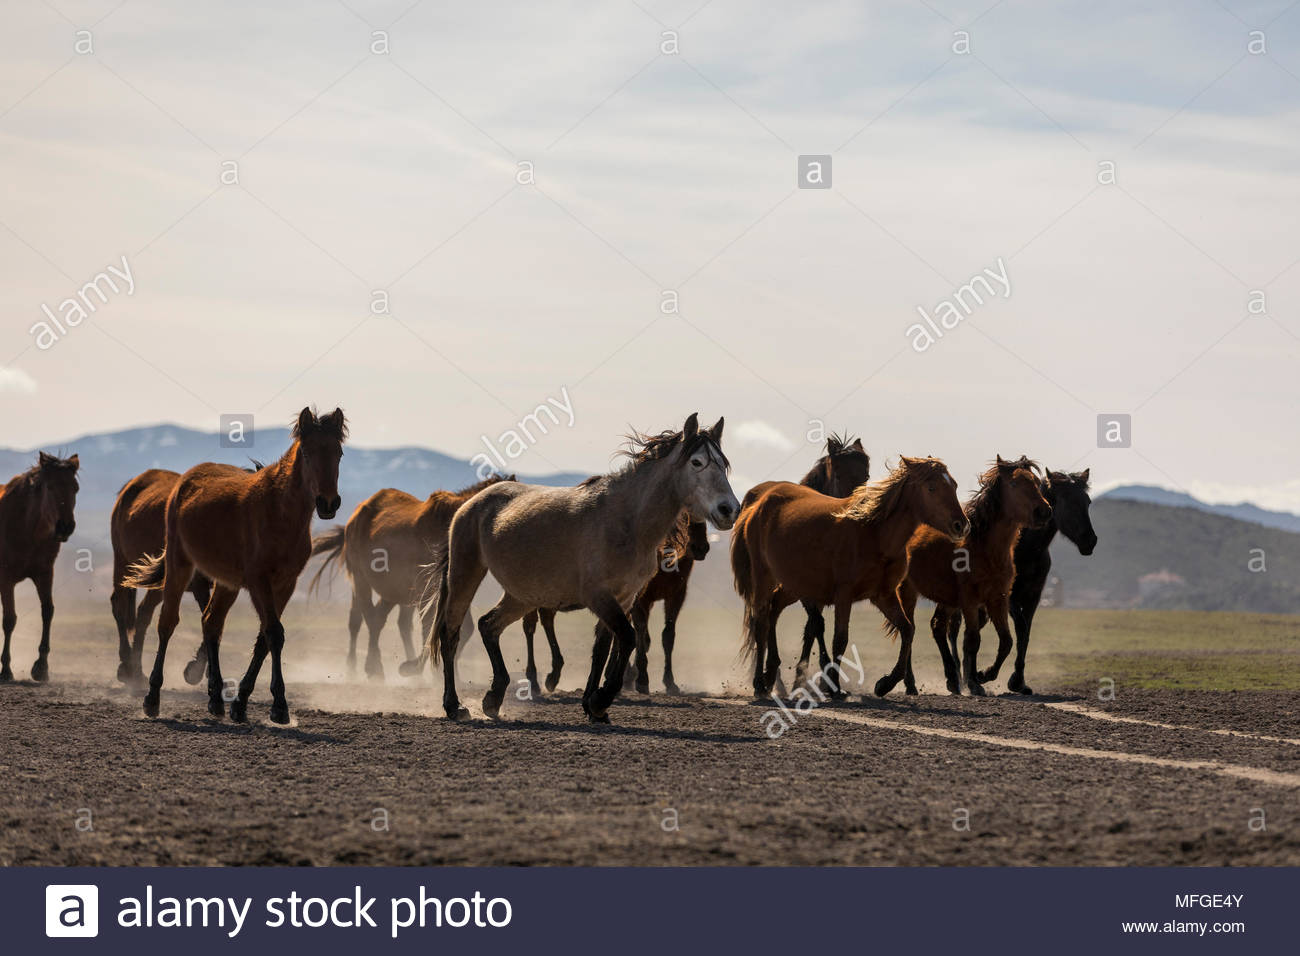 Wild Yılkı Horses In Nature - Stock Image